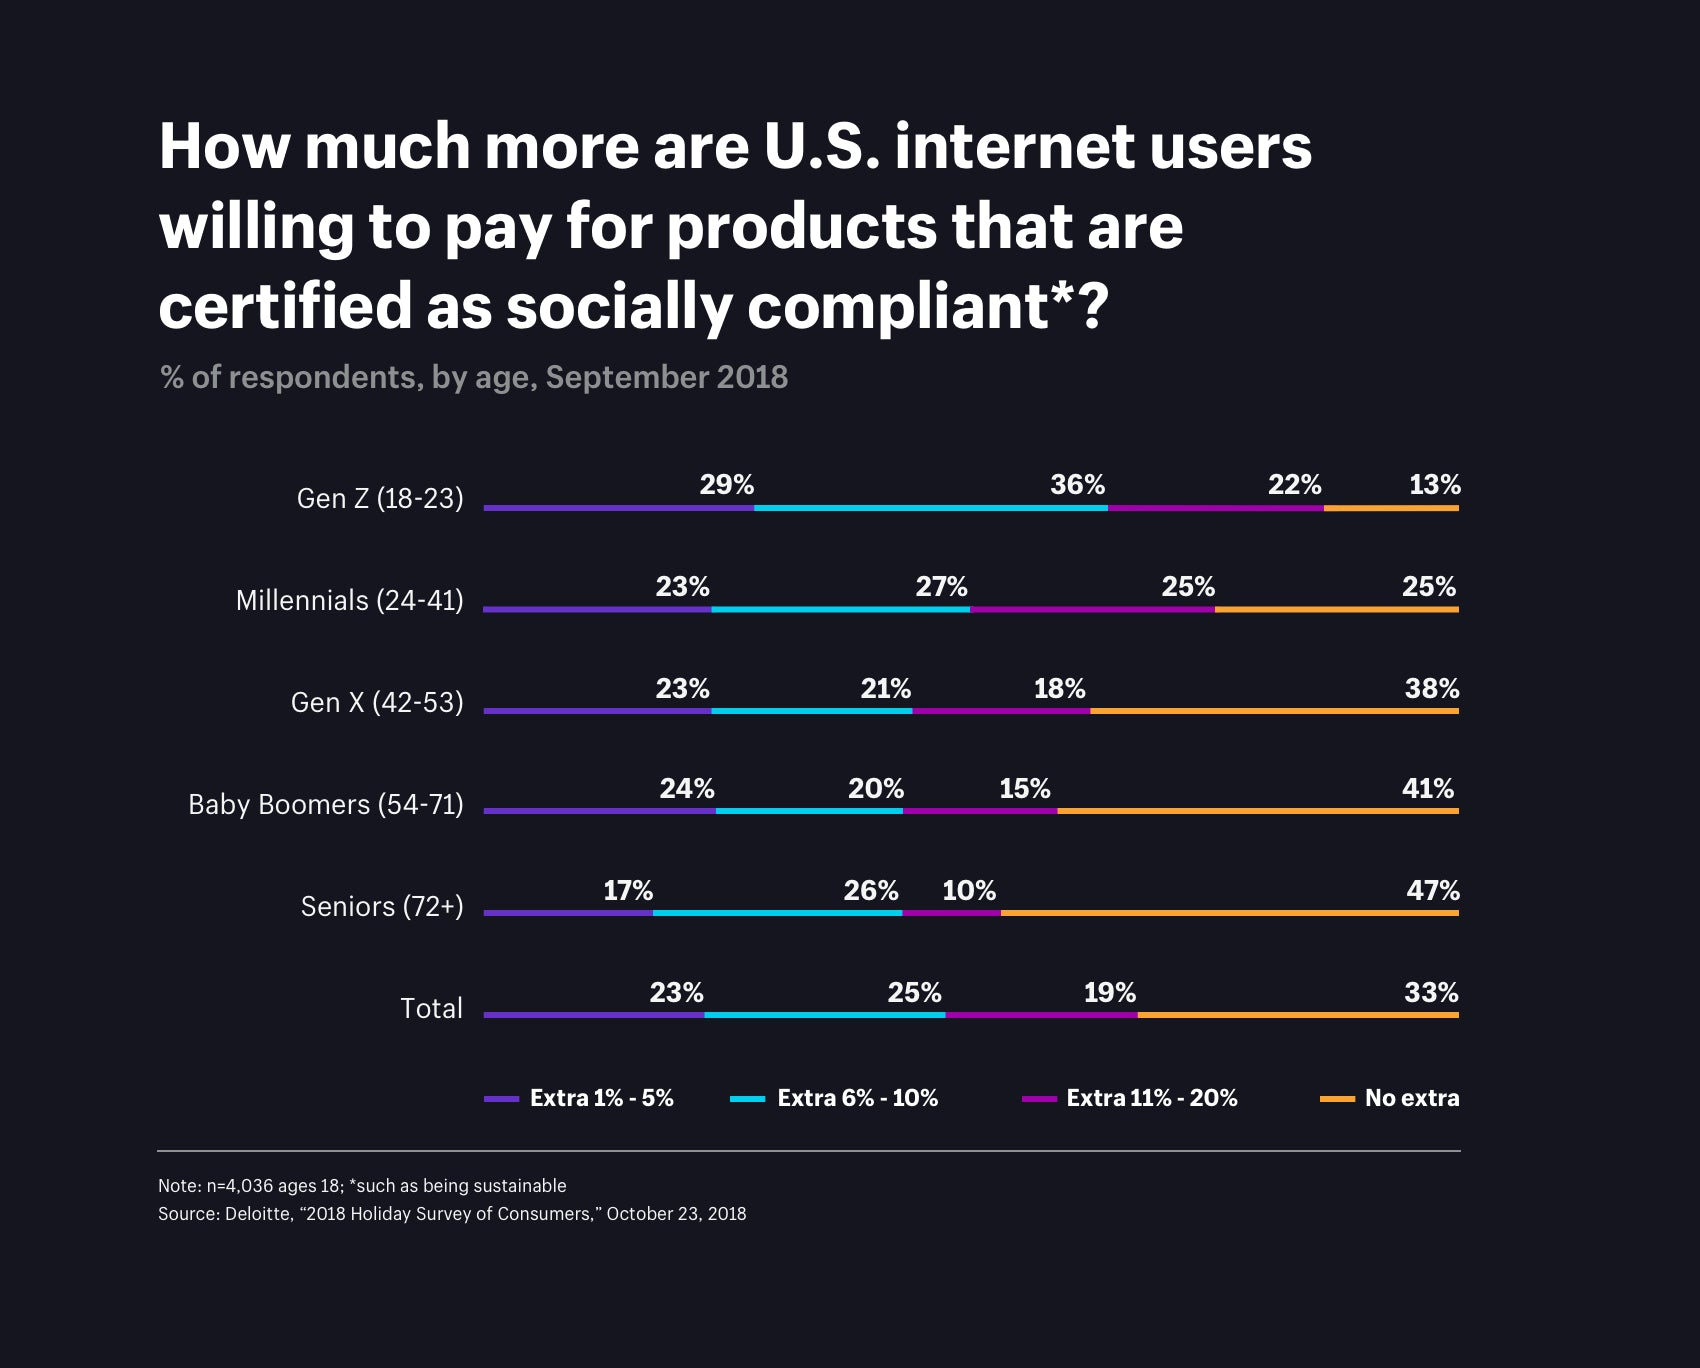 How much more are U.S. internet users willing to paying for socially compliant products?